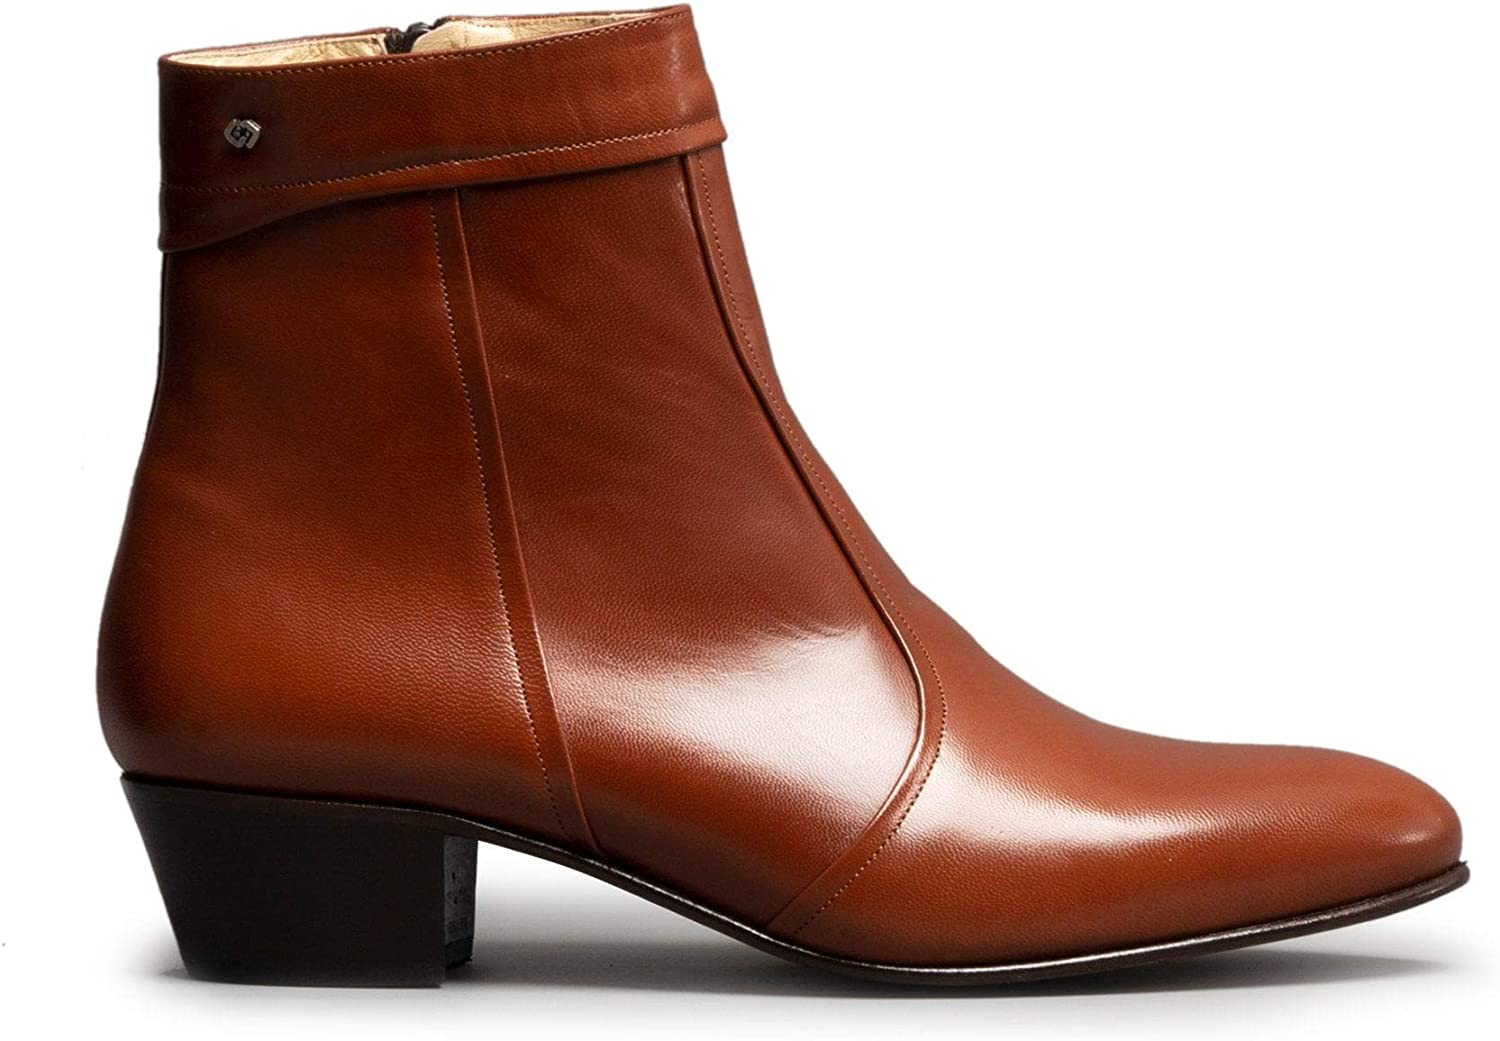 Club Cubano EMMANUEL Mens Smooth Leather Cuban Heel Zip Up Ankle Boots Tan